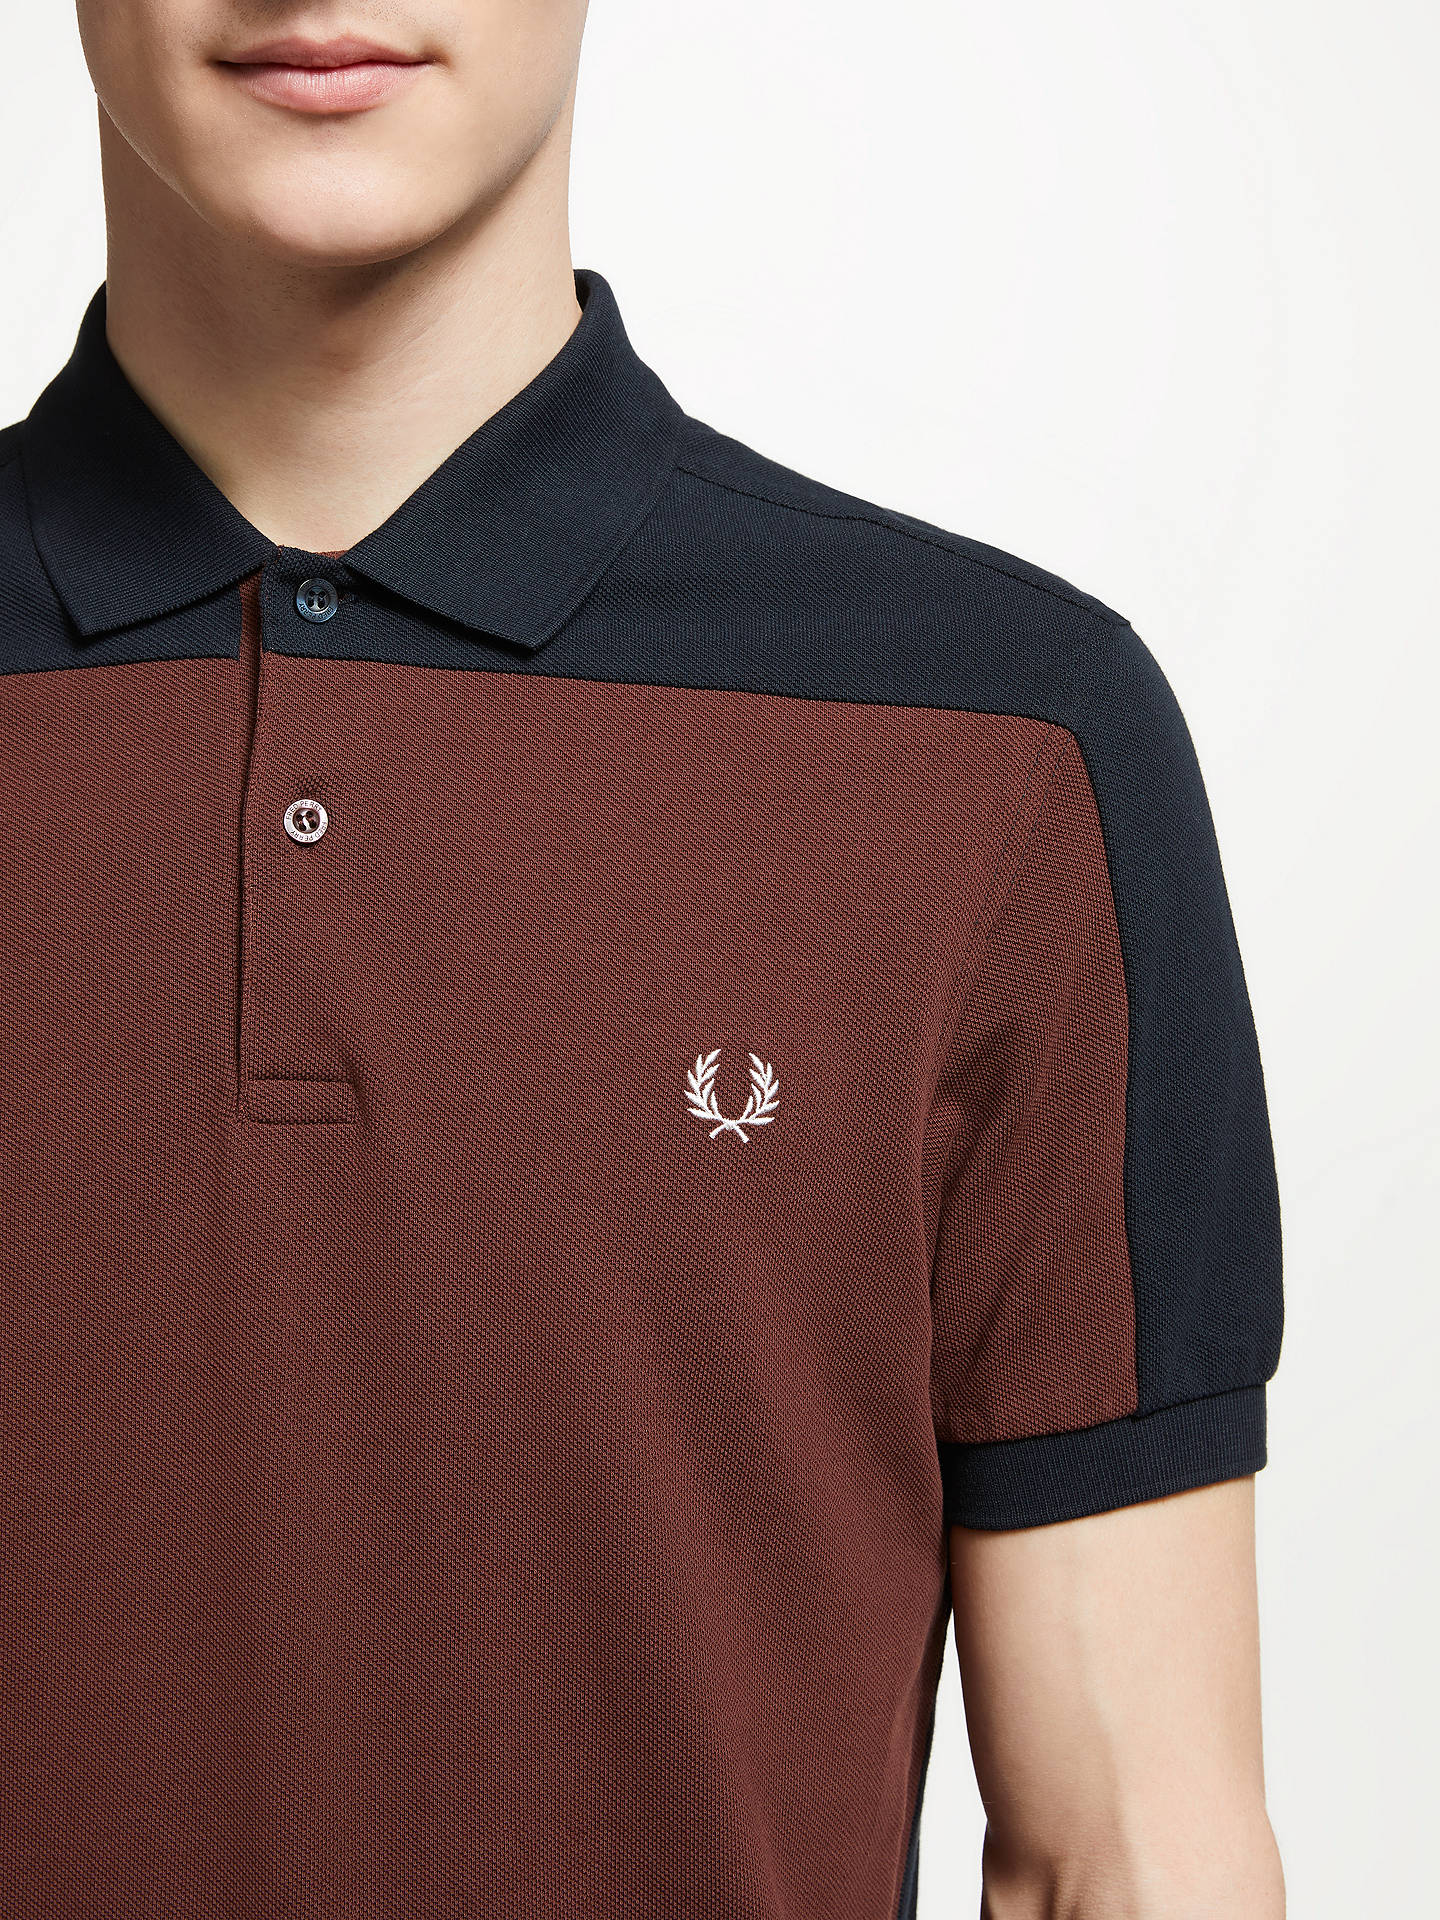 470b70b85 ... Buy Fred Perry Panelled Pique Polo Shirt